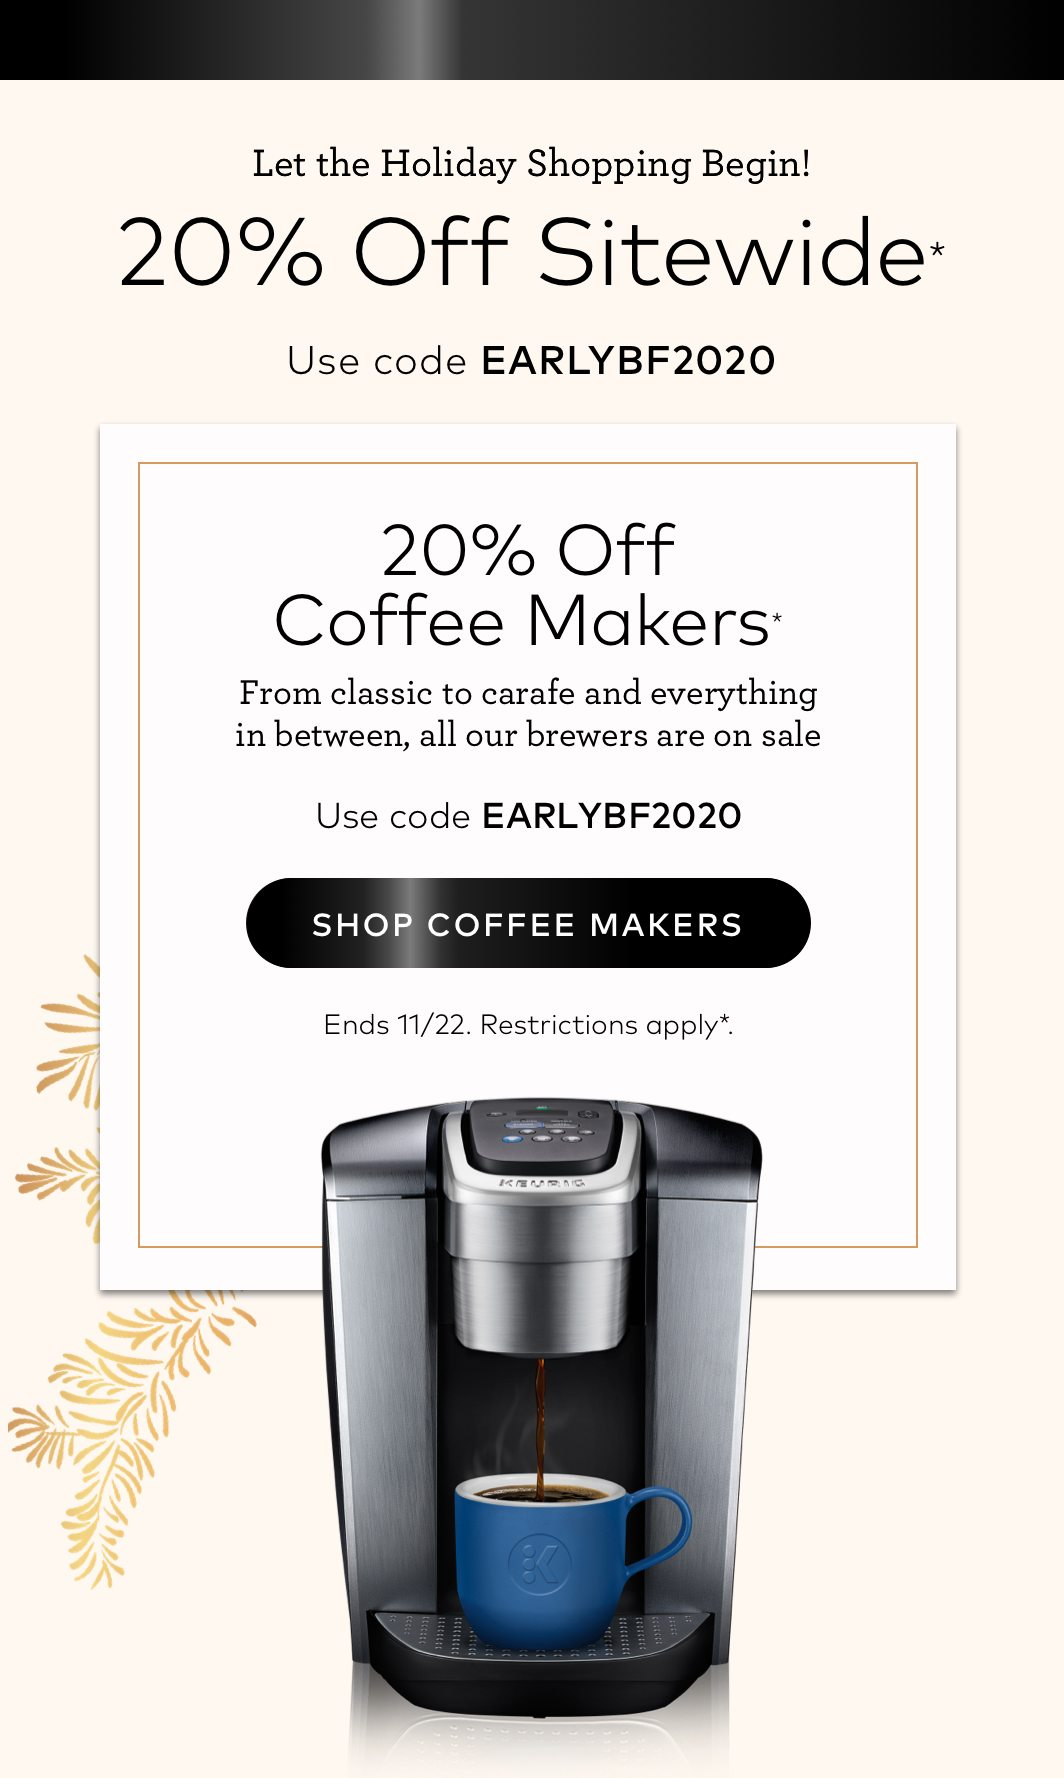 20% off Coffee Makers with EARLYBF2020